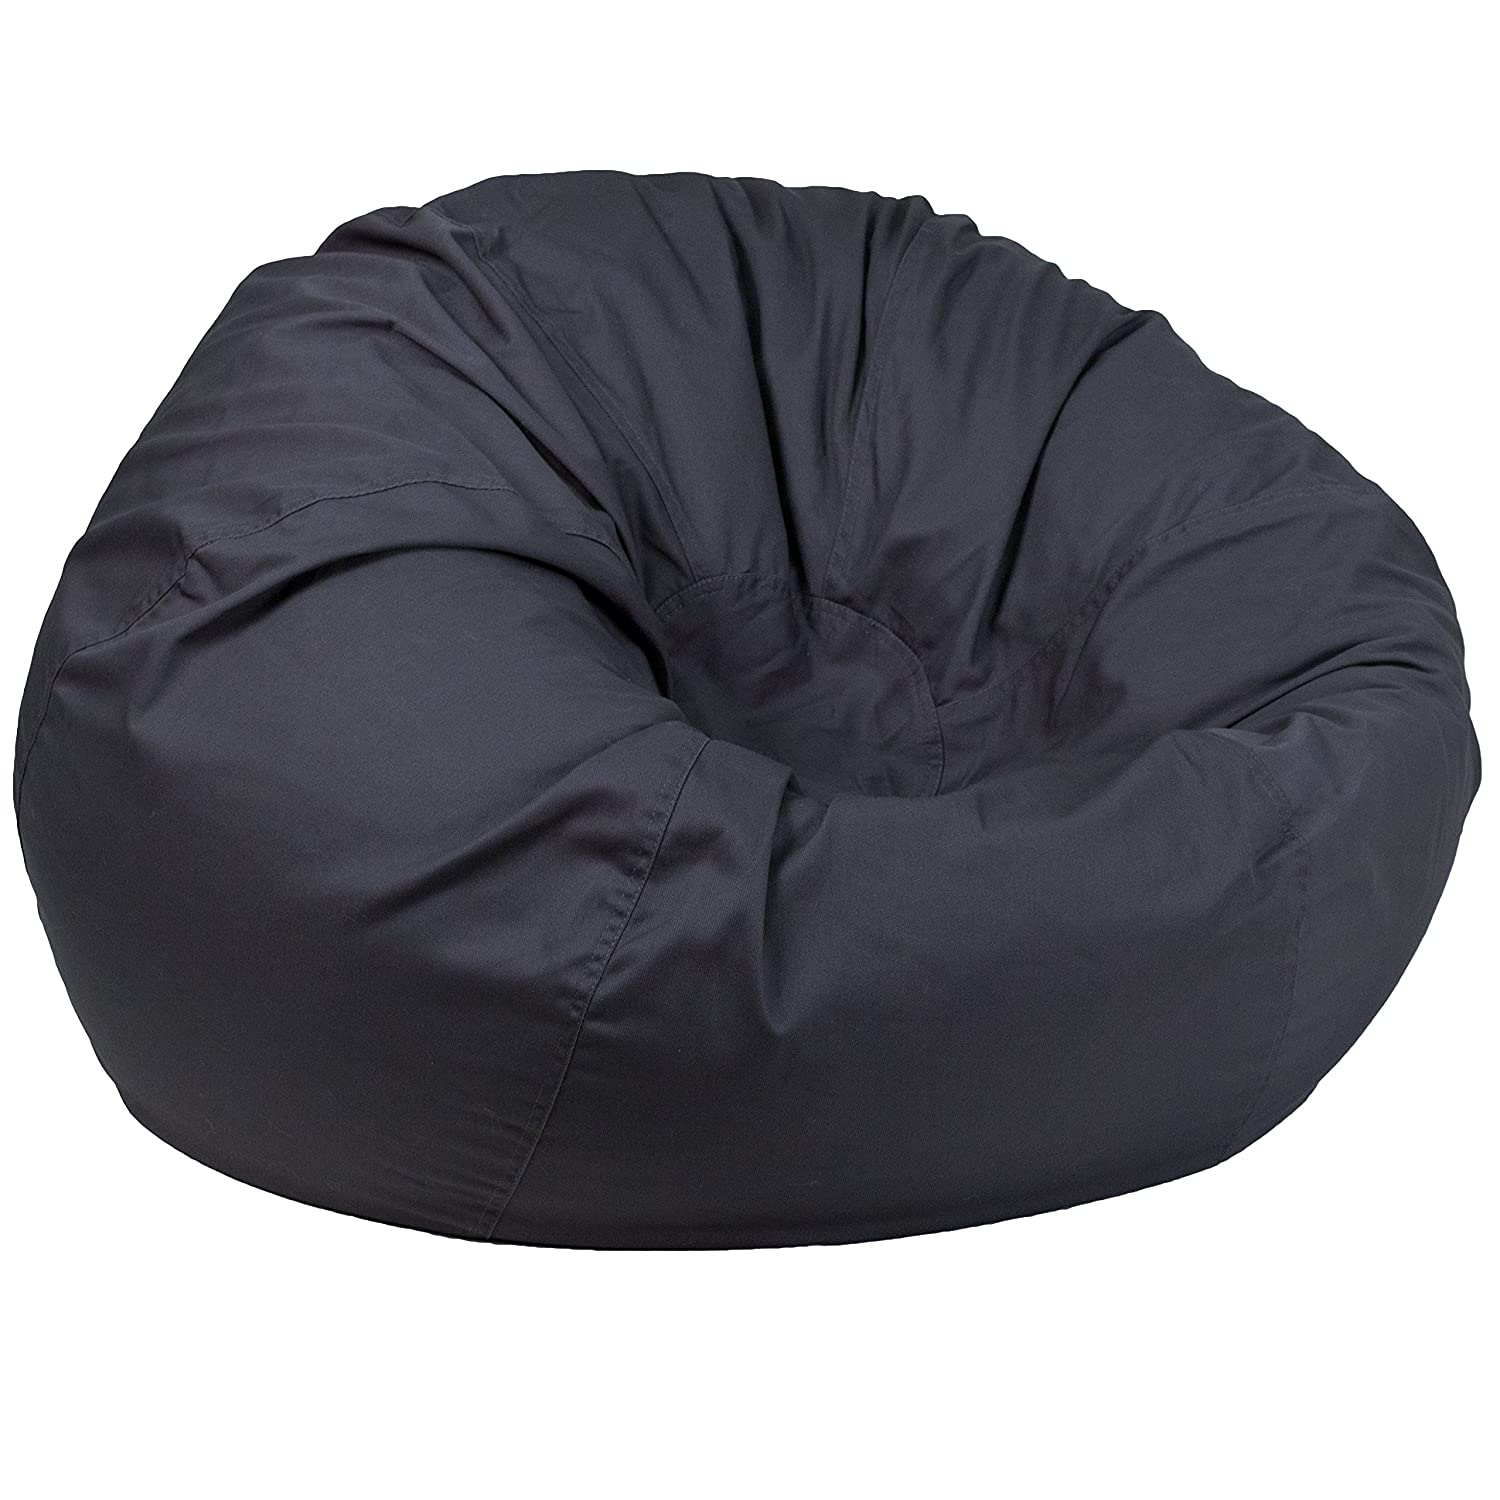 Attirant Amazon.com: Flash Furniture Oversized Solid Navy Blue Bean Bag Chair:  Kitchen U0026 Dining